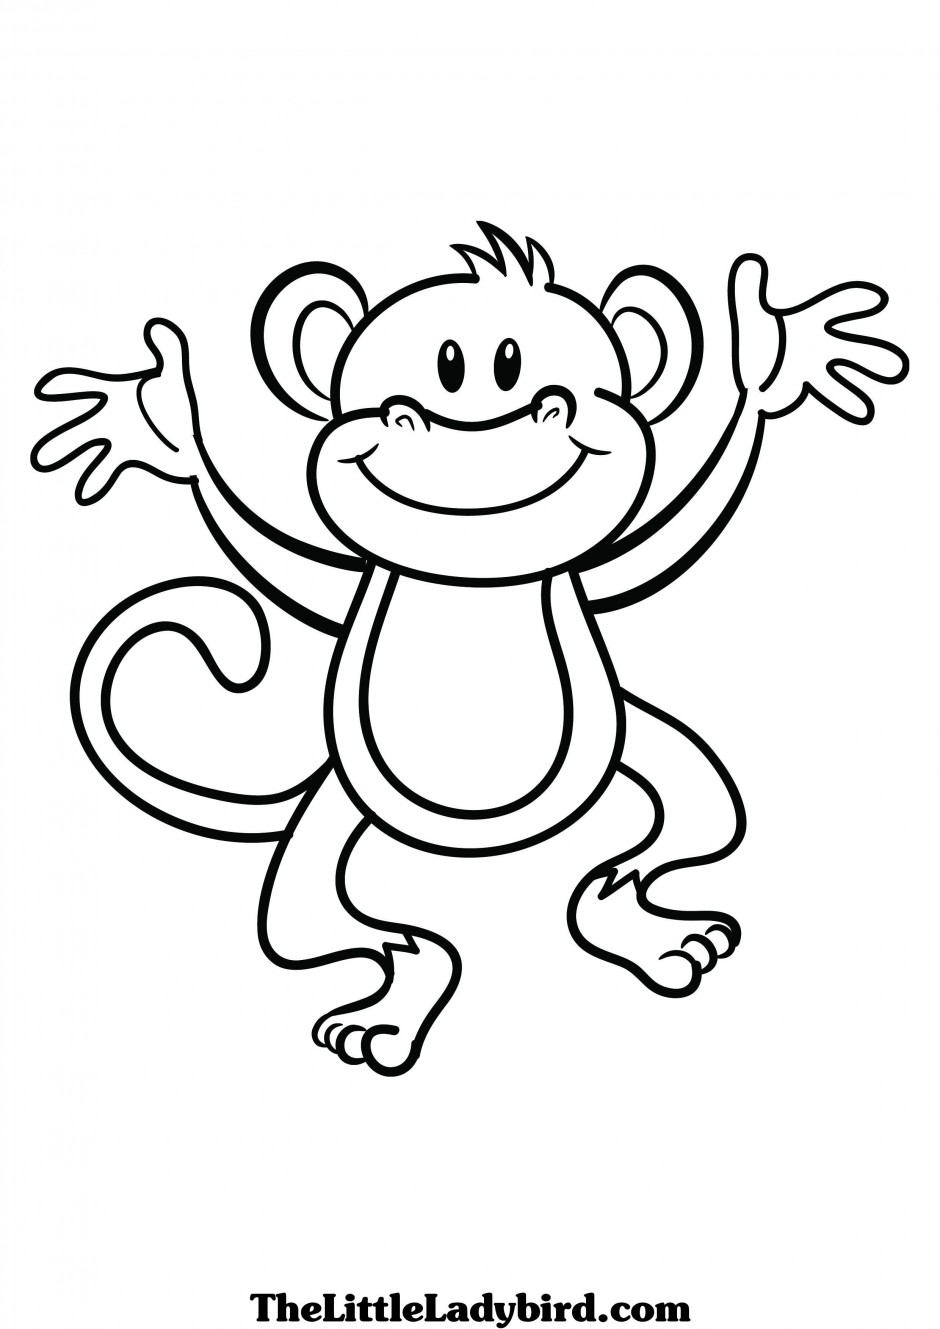 Monkey Black And White Clipart - Clipart Kid